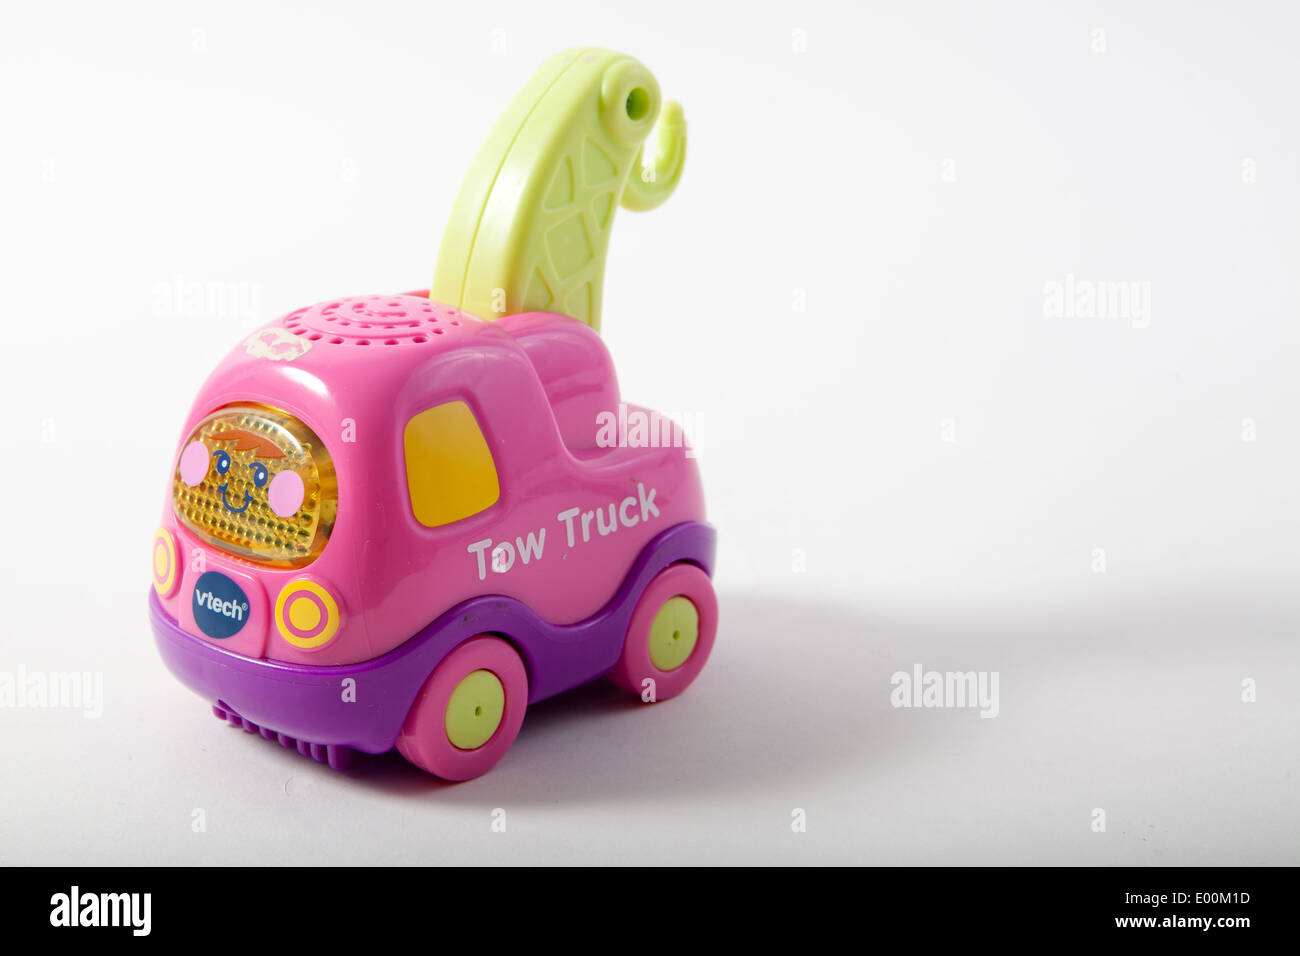 V Tech Garage : Toys on a white background vtech tow truck for the baby toot toot